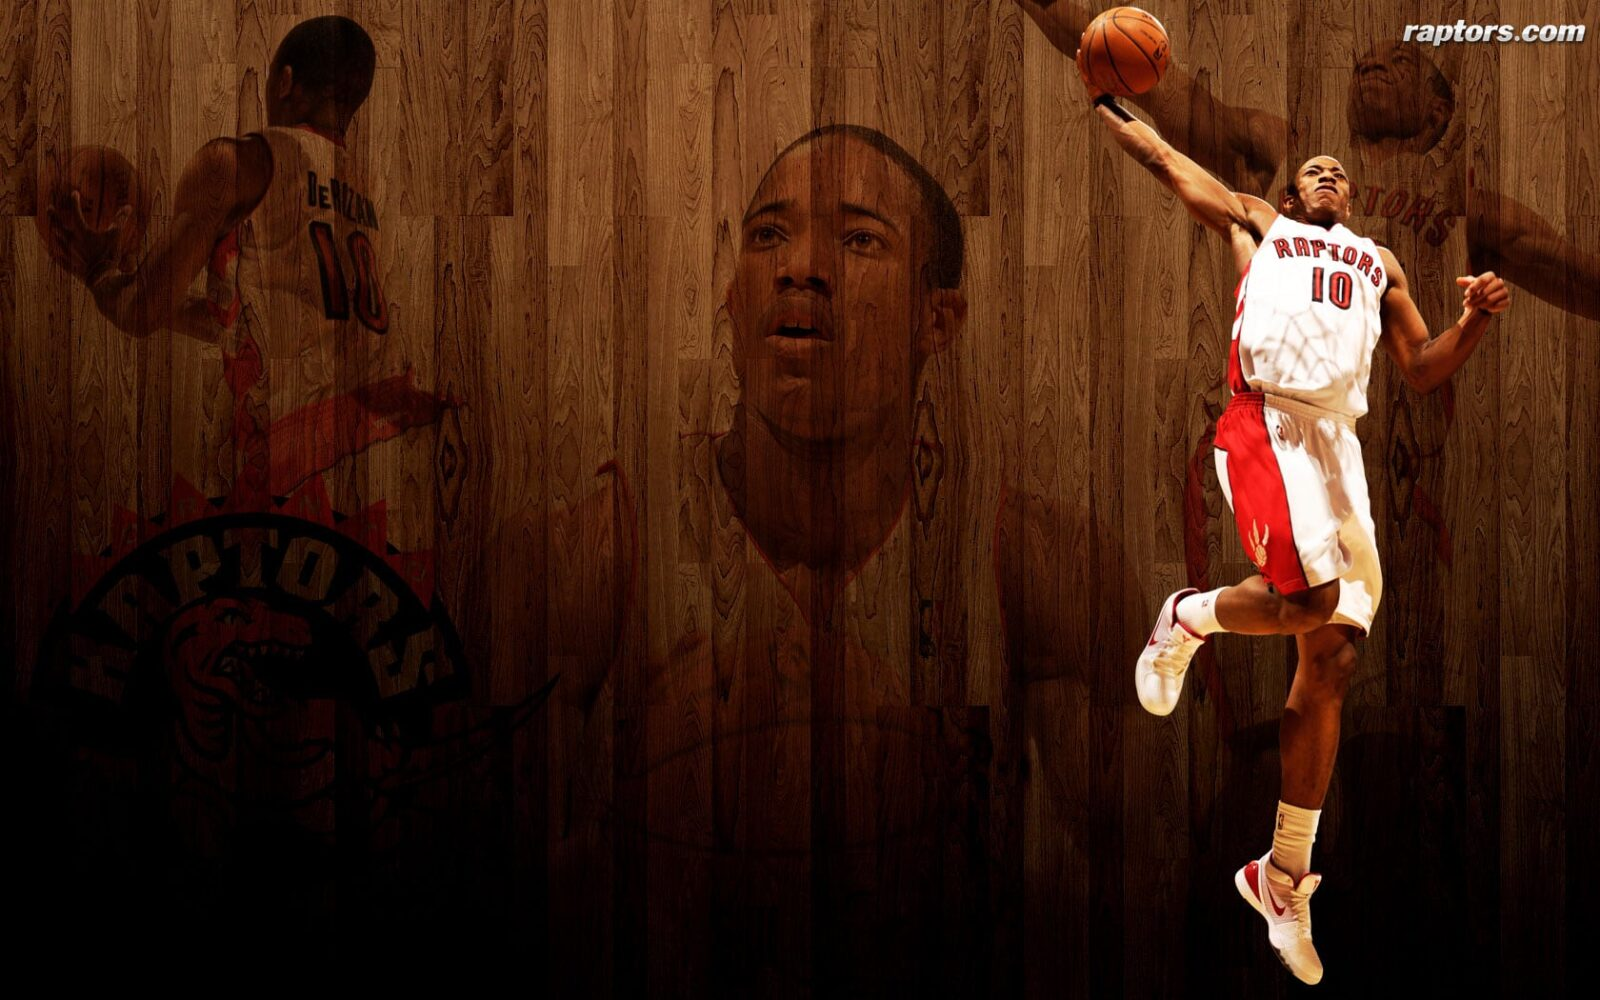 Raptors DeMar DeRozan full HD image